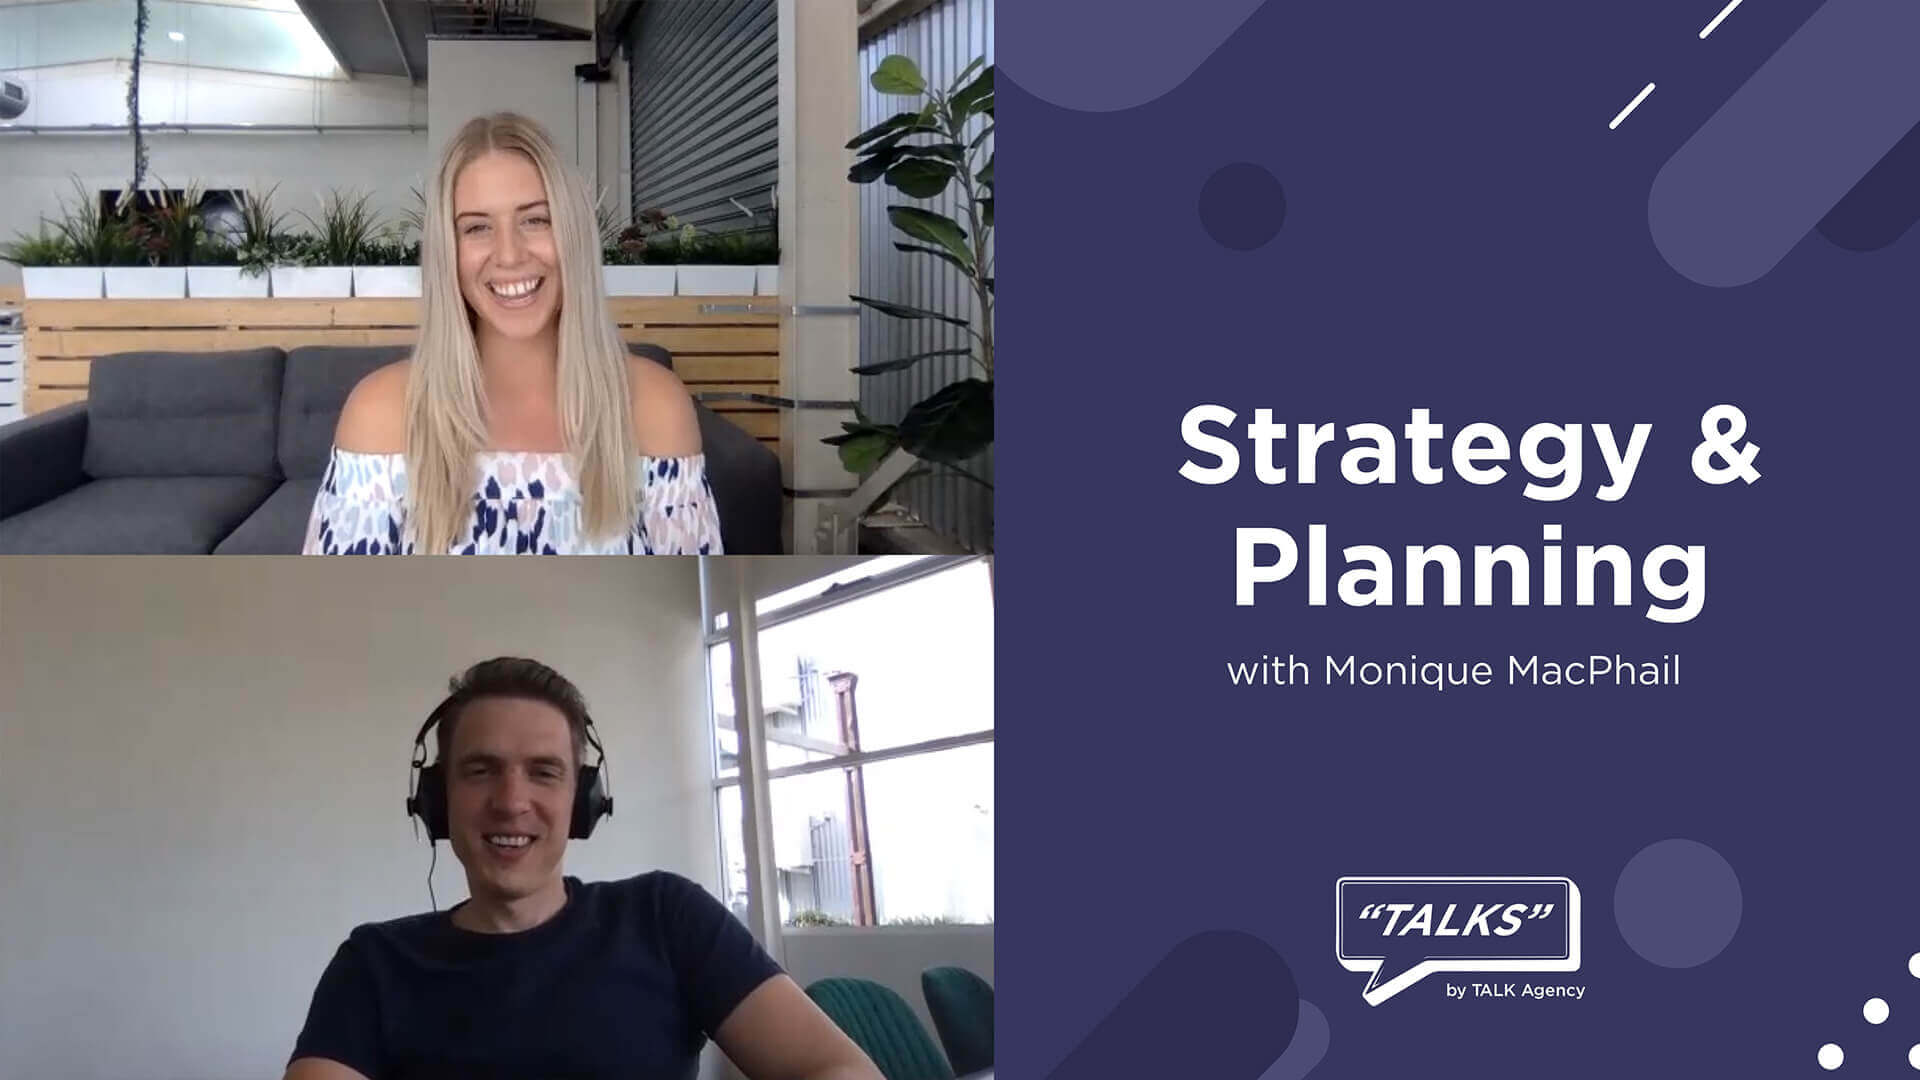 Strategy and planning with Monique MacPhail